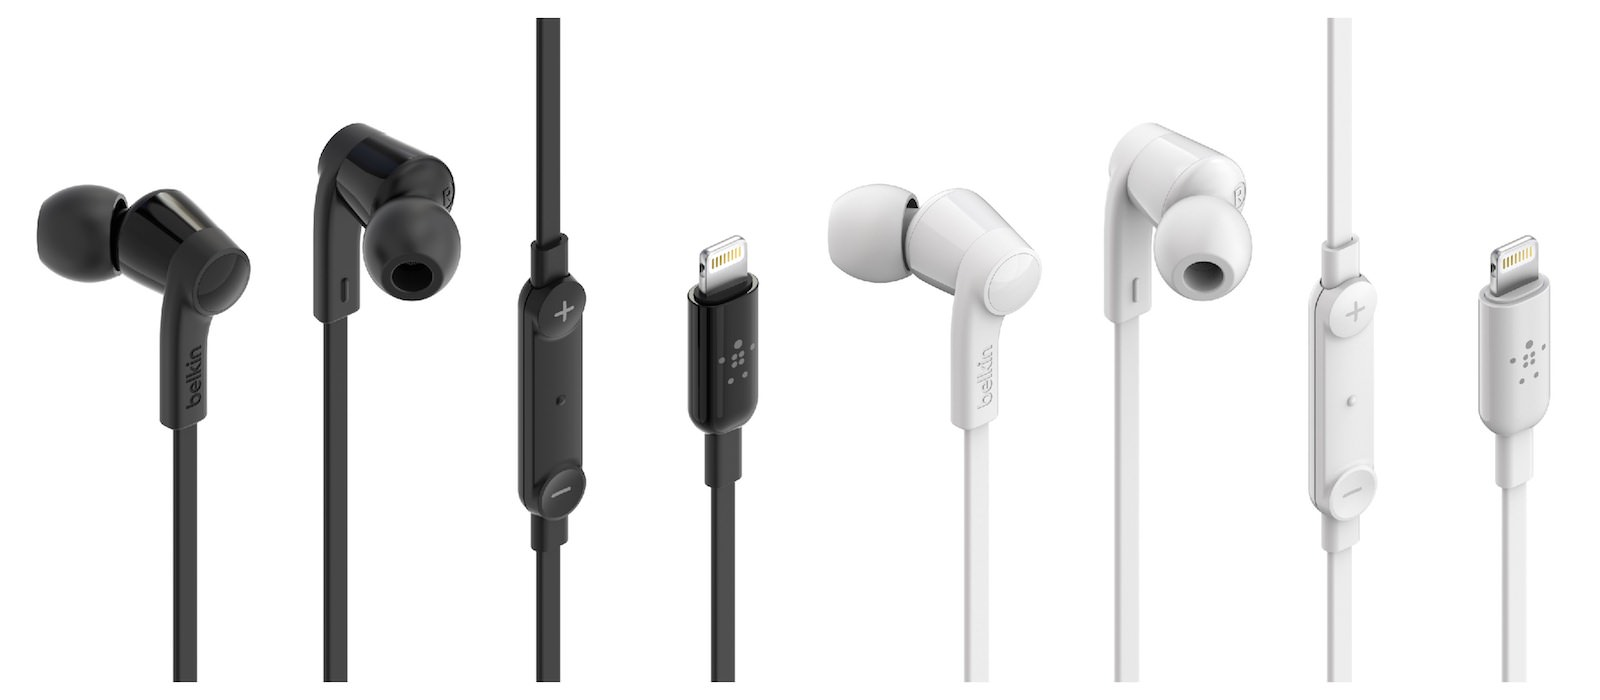 Belkin-Lightning-Earphones.jpg